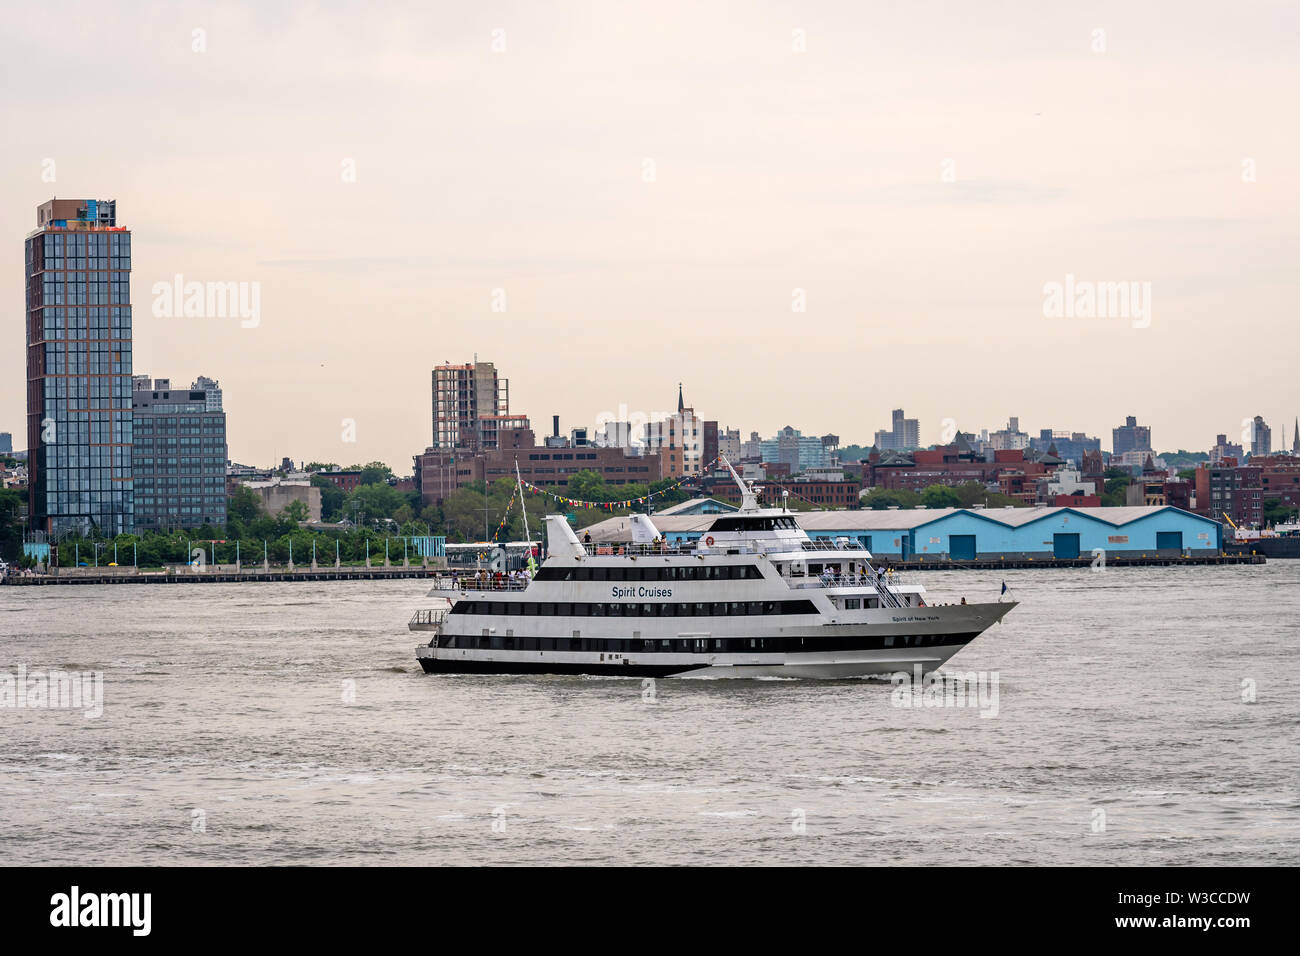 New York, USA - June 7, 2019:  Tourist boats on East River in front of Manhattan, A East River ferry boat travels the Hudson River - Image - Stock Image